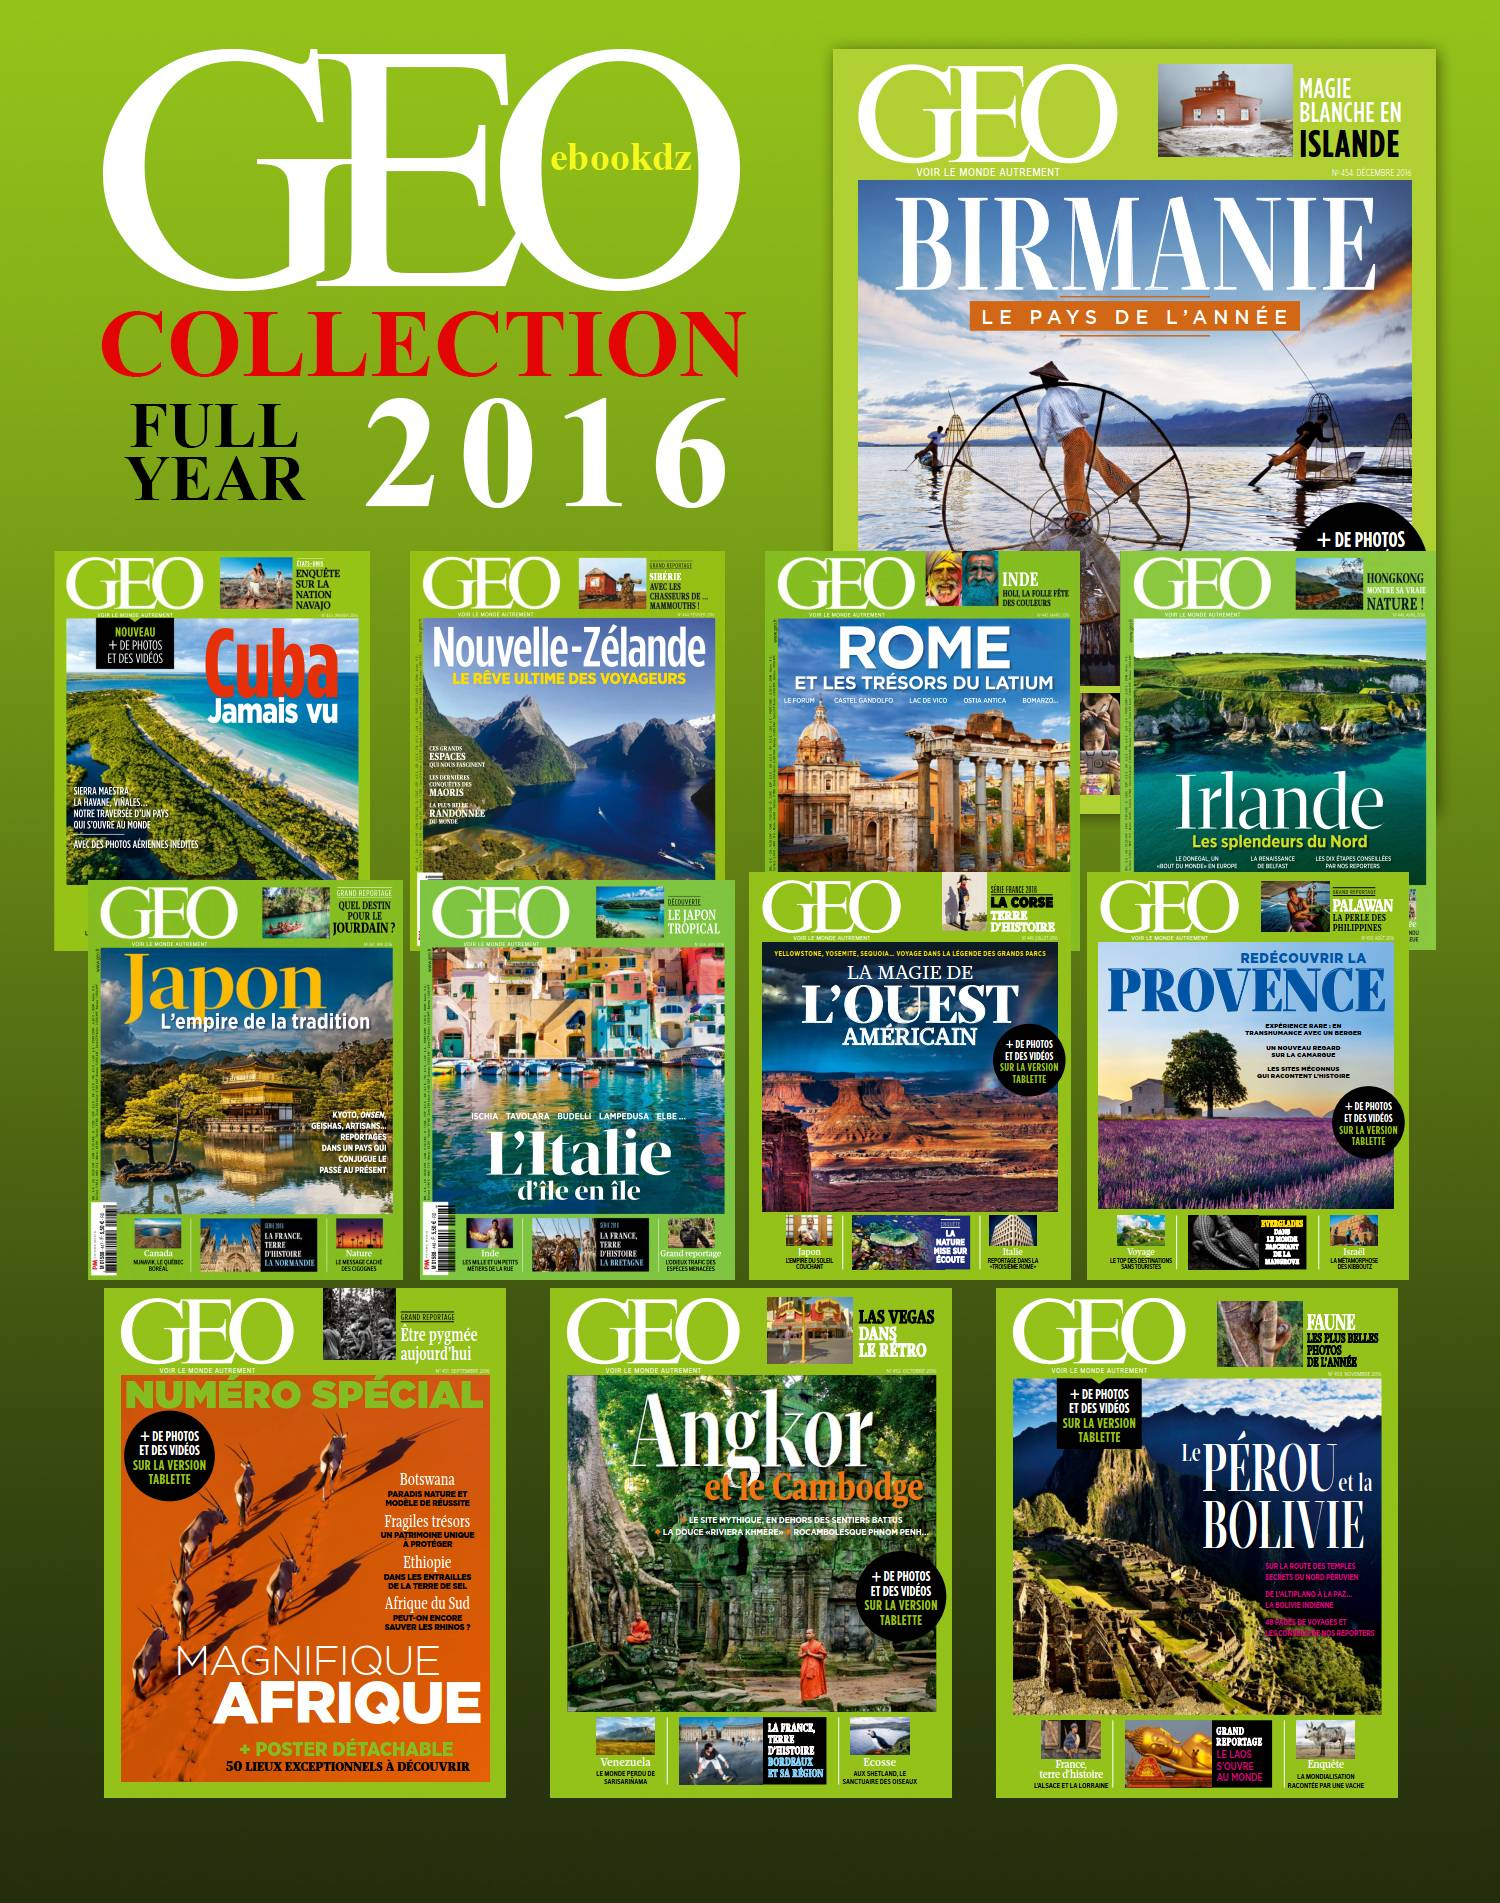 Geo - Full Year 2016 Collection.